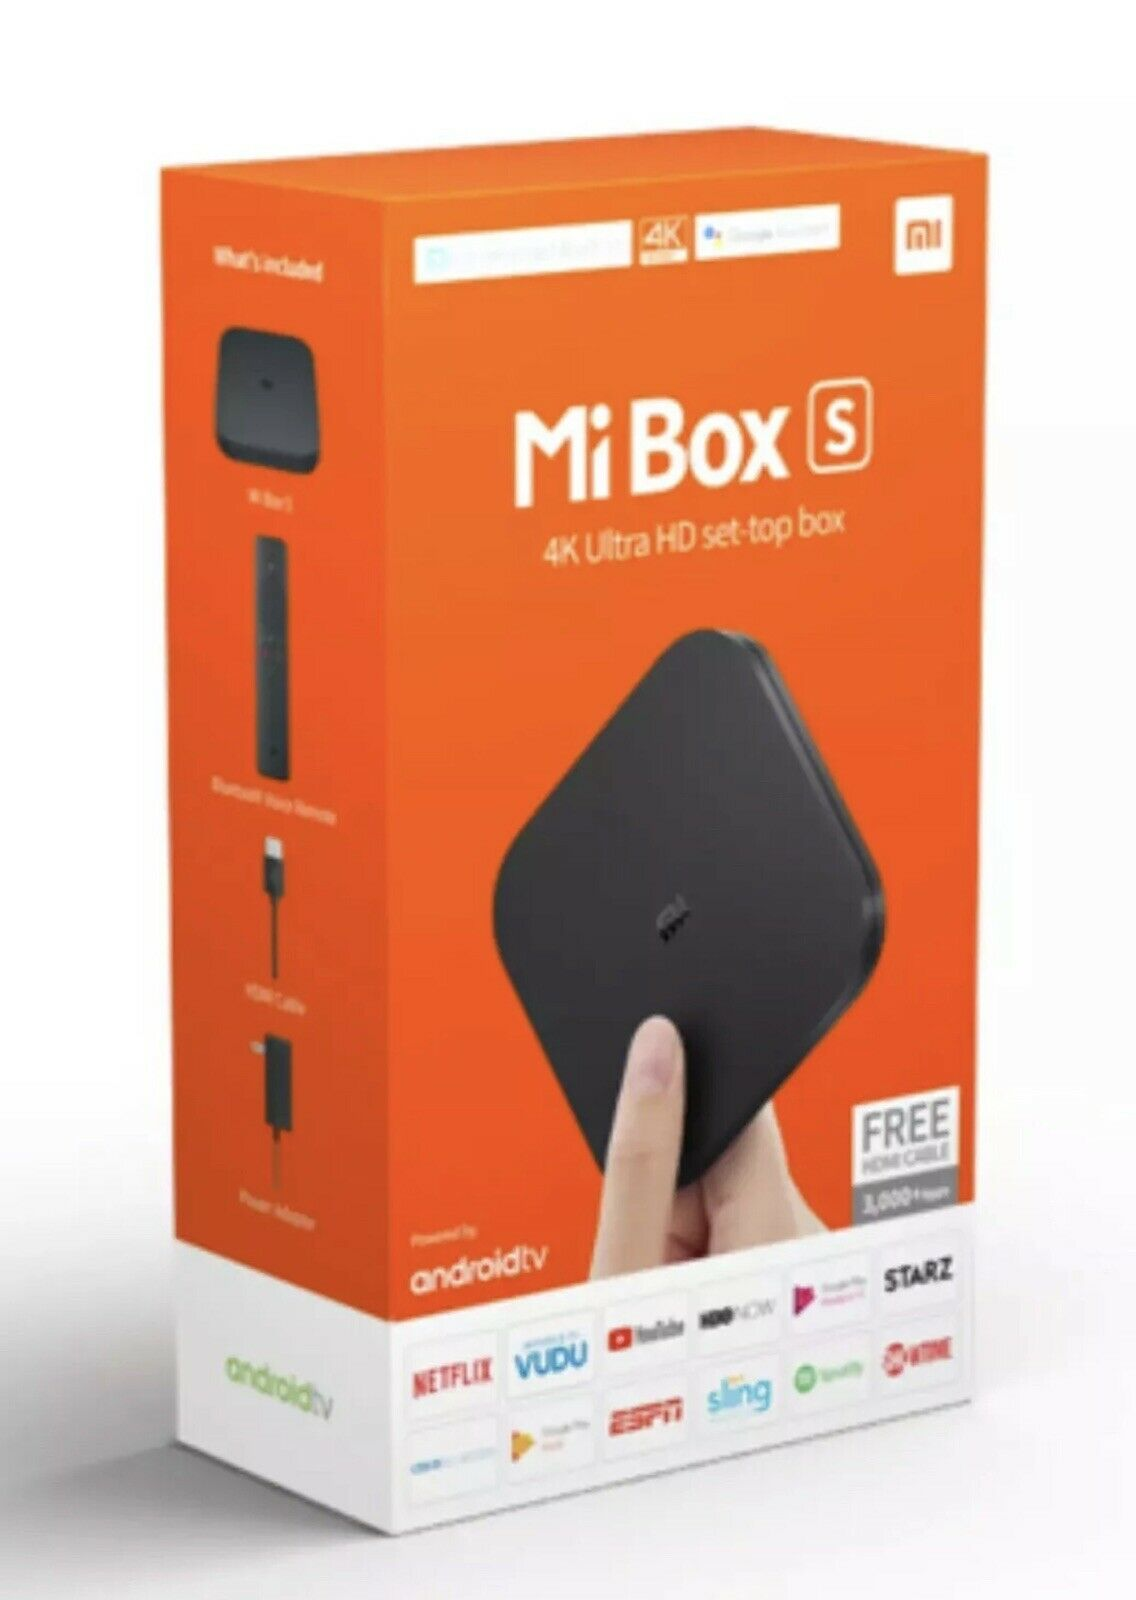 Xiaomi Mi Box S Streaming Media Player Home 4K HDR Android TV Google Assist Featured